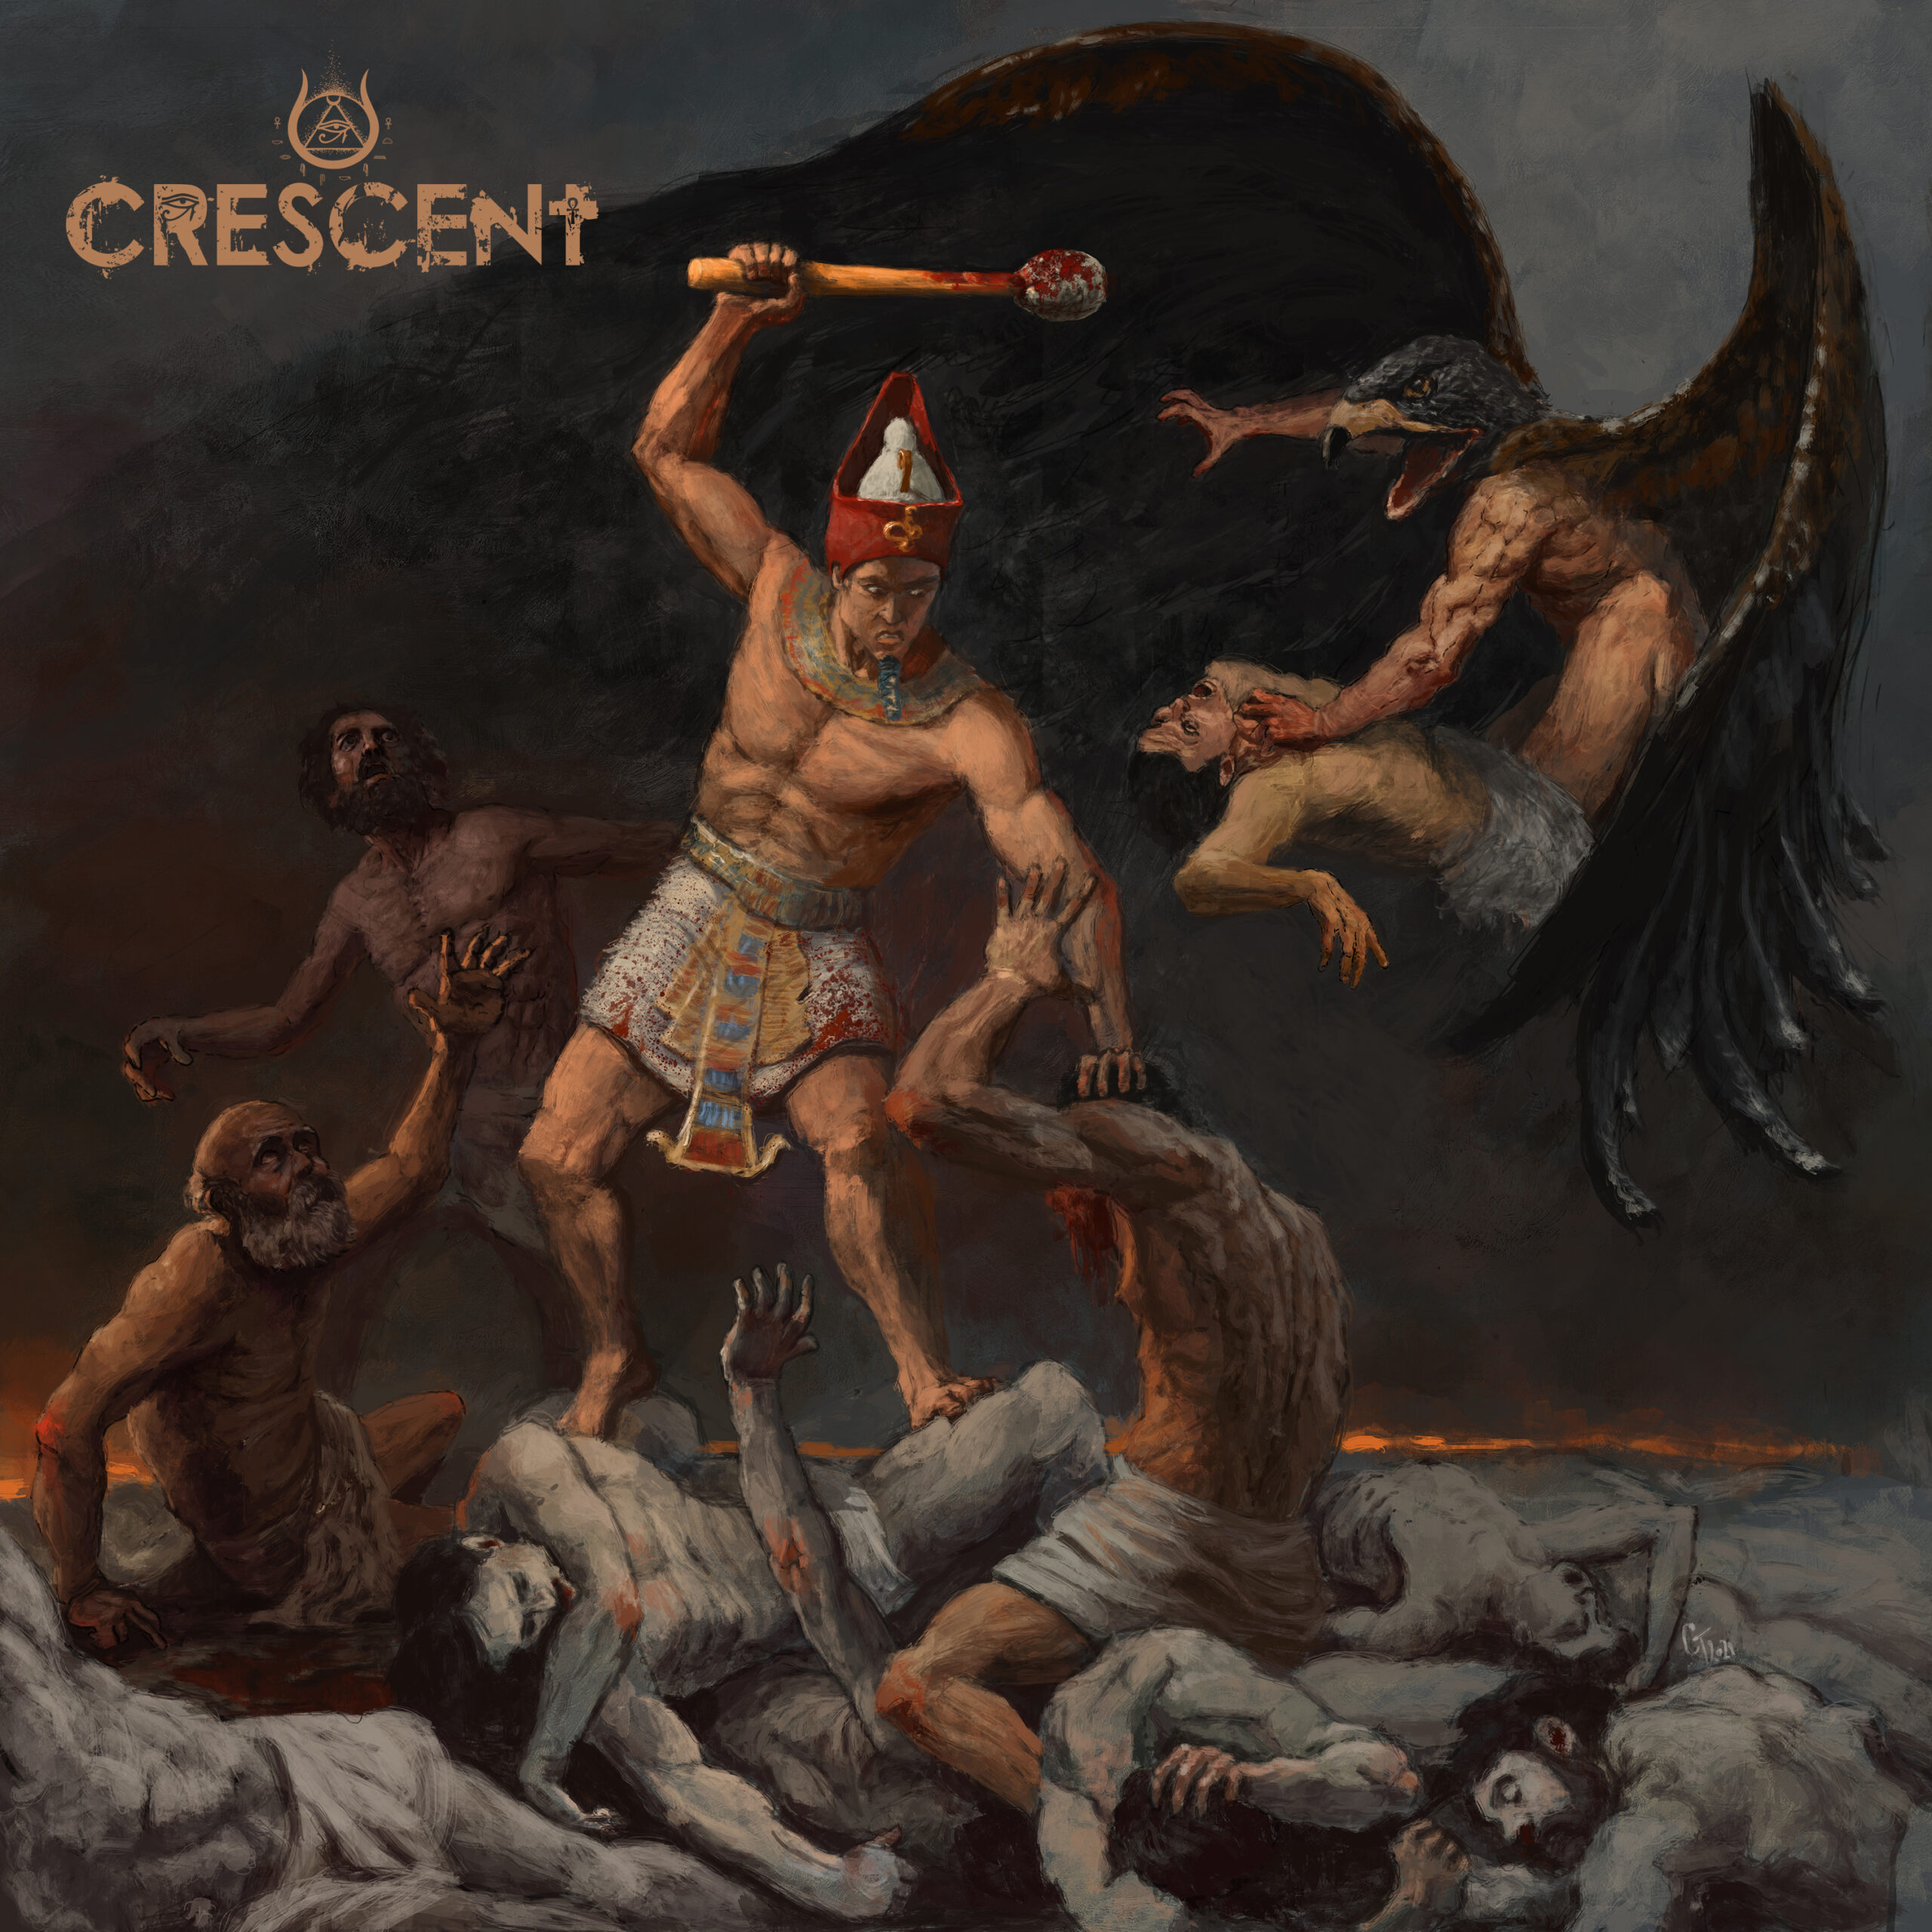 Crescent – Carving The Fires Of Akhet